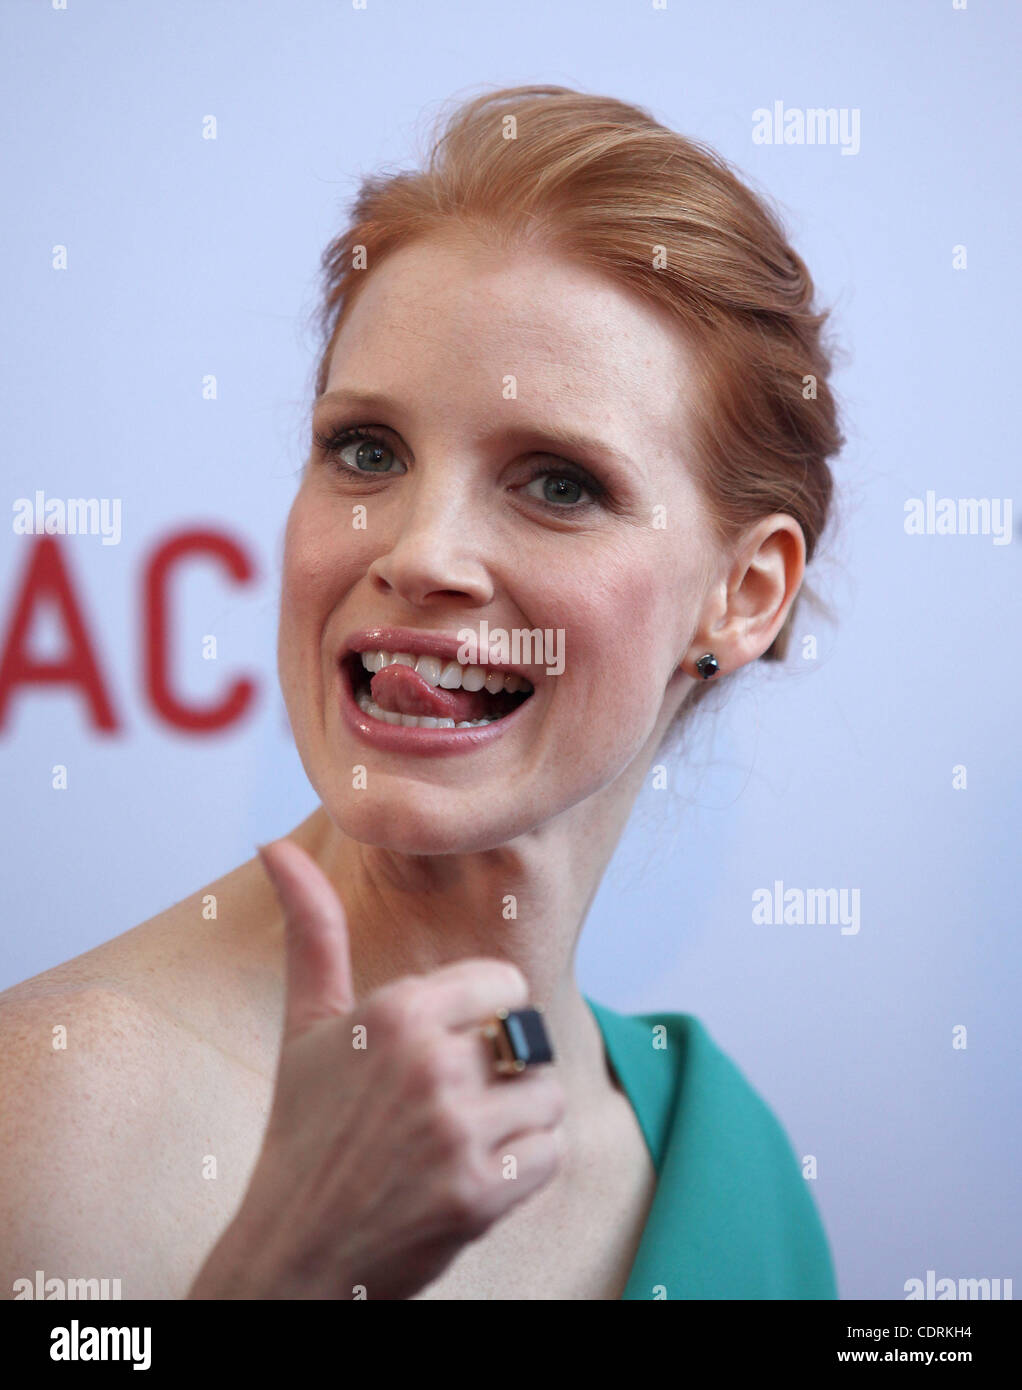 May 24, 2011 - Los Angeles, California, U.S. - JESSICA CHASTAIN arrives for the premiere of the film 'Tree Of - Stock Image